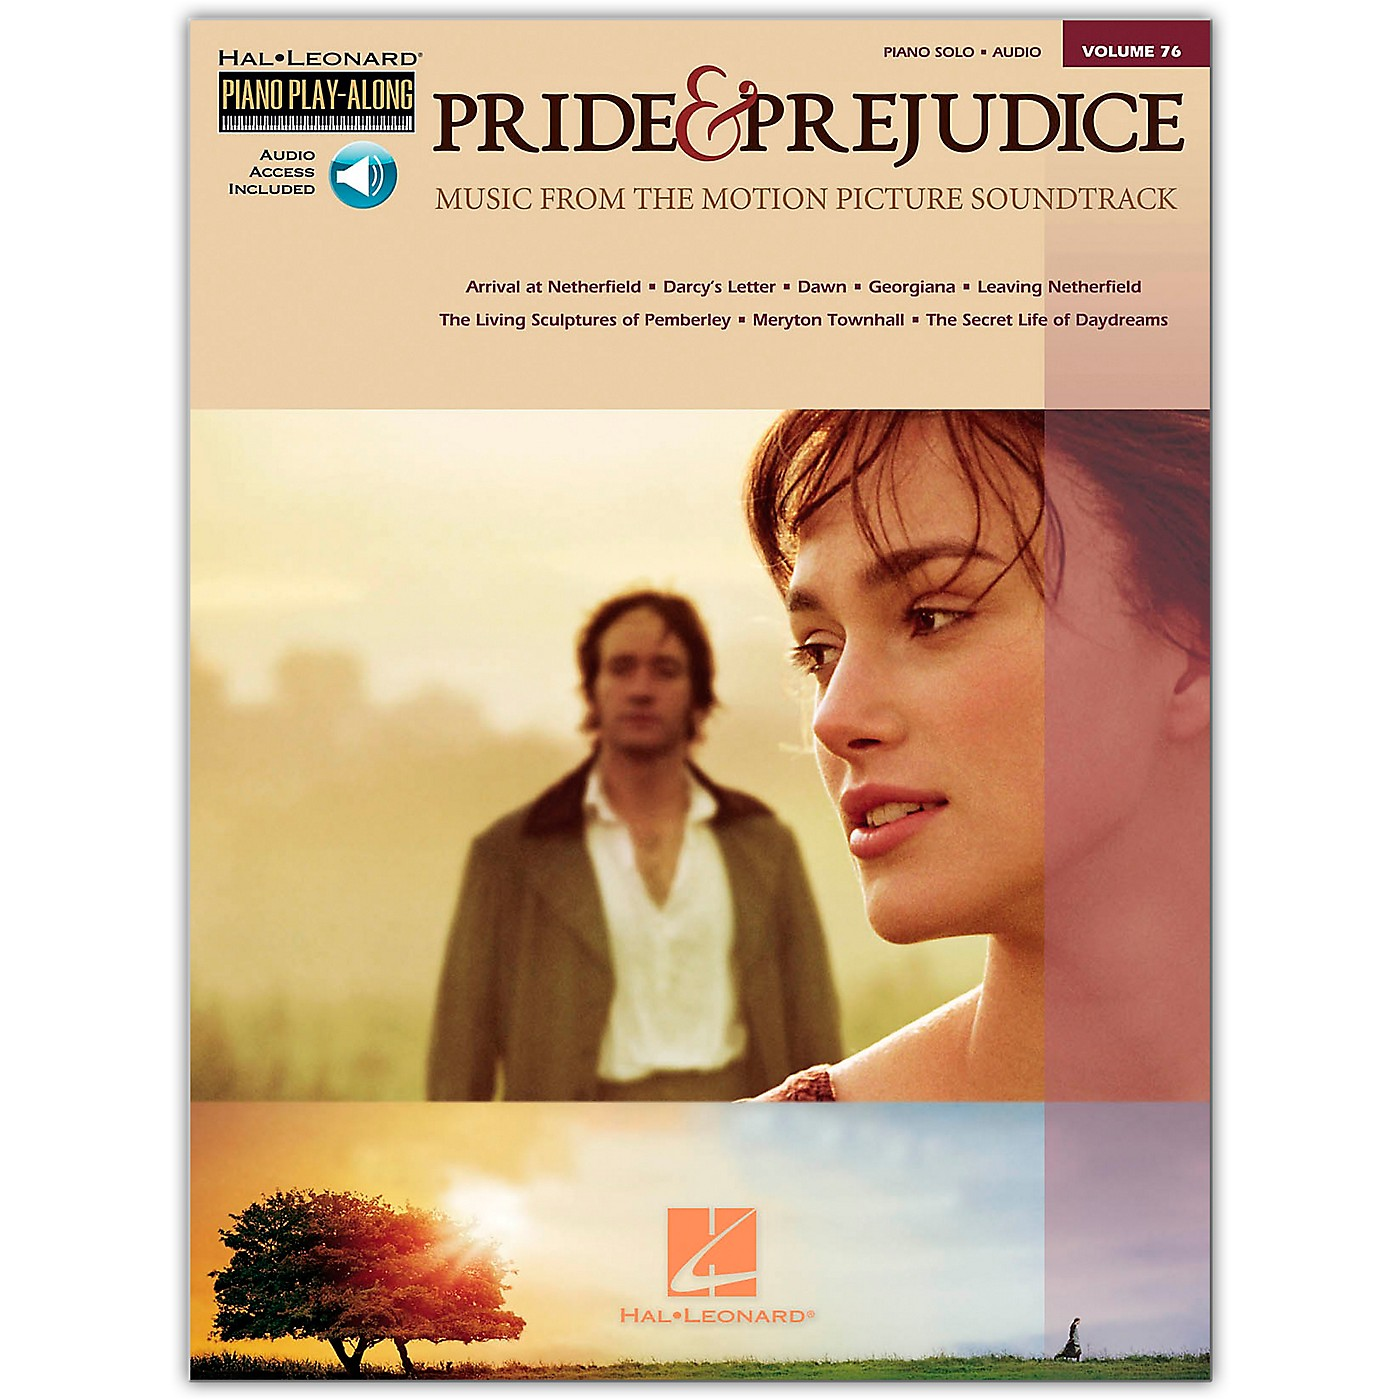 Hal Leonard Pride & Prejudice - Music From The Movie Soundtrack - Piano Play-Along Volume 76 (Book/Online Audio) thumbnail